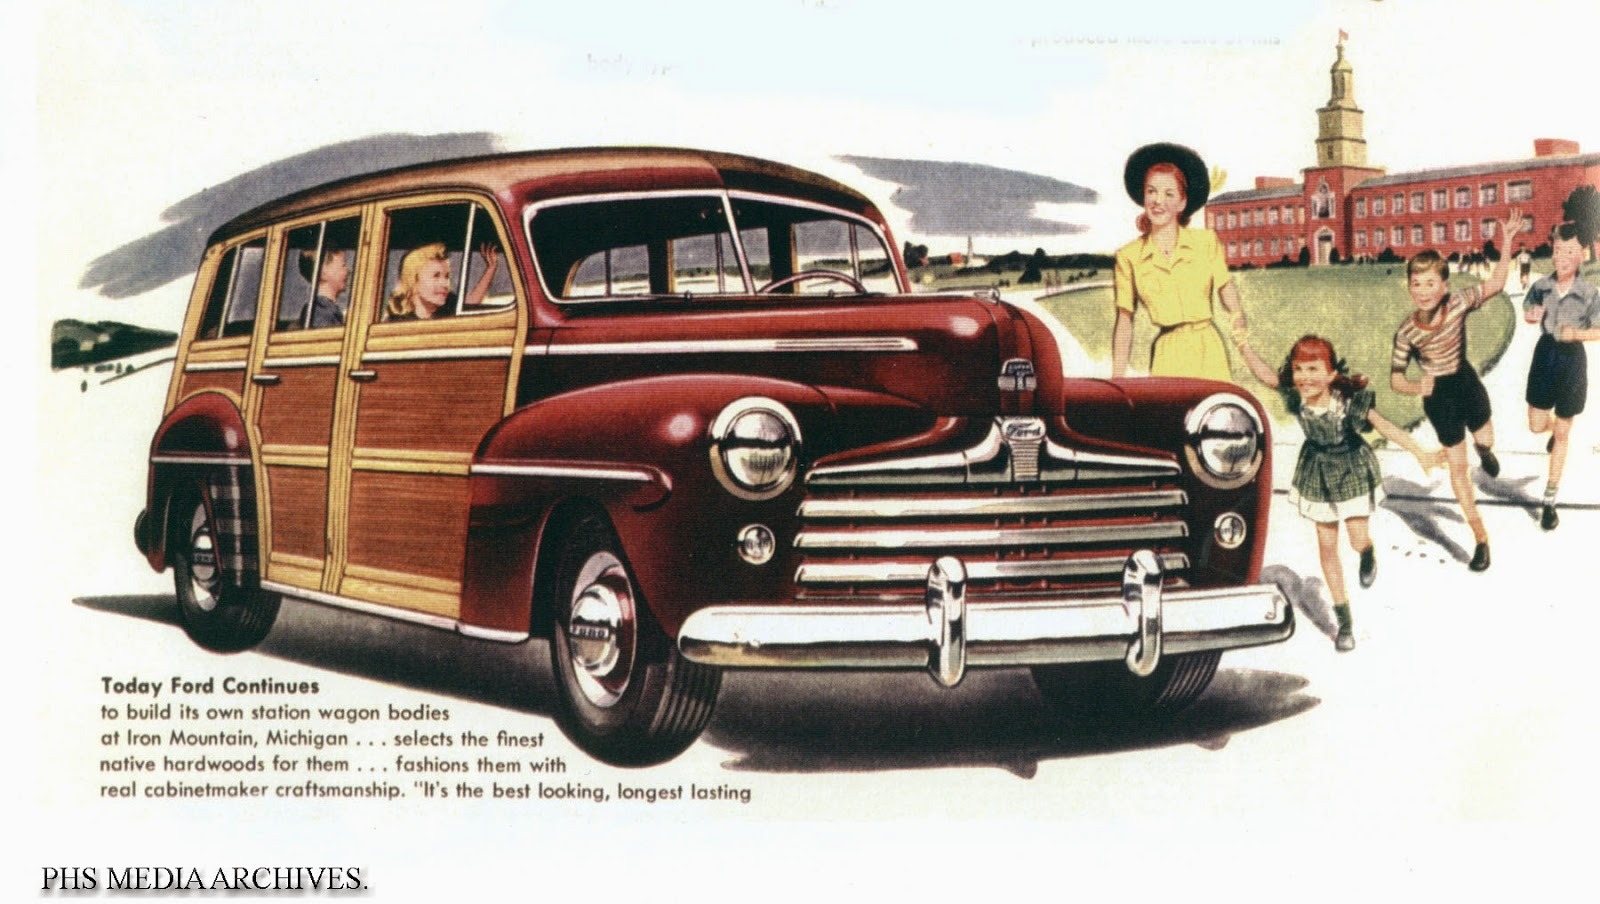 1946 Ford Woody Station Wagons Phscollectorcarworld 1960 Pontiac Catalina Wiring Diagrams By The Woodie Wagon Was A Solid Status Symbol Of Wealth And Genteel Living